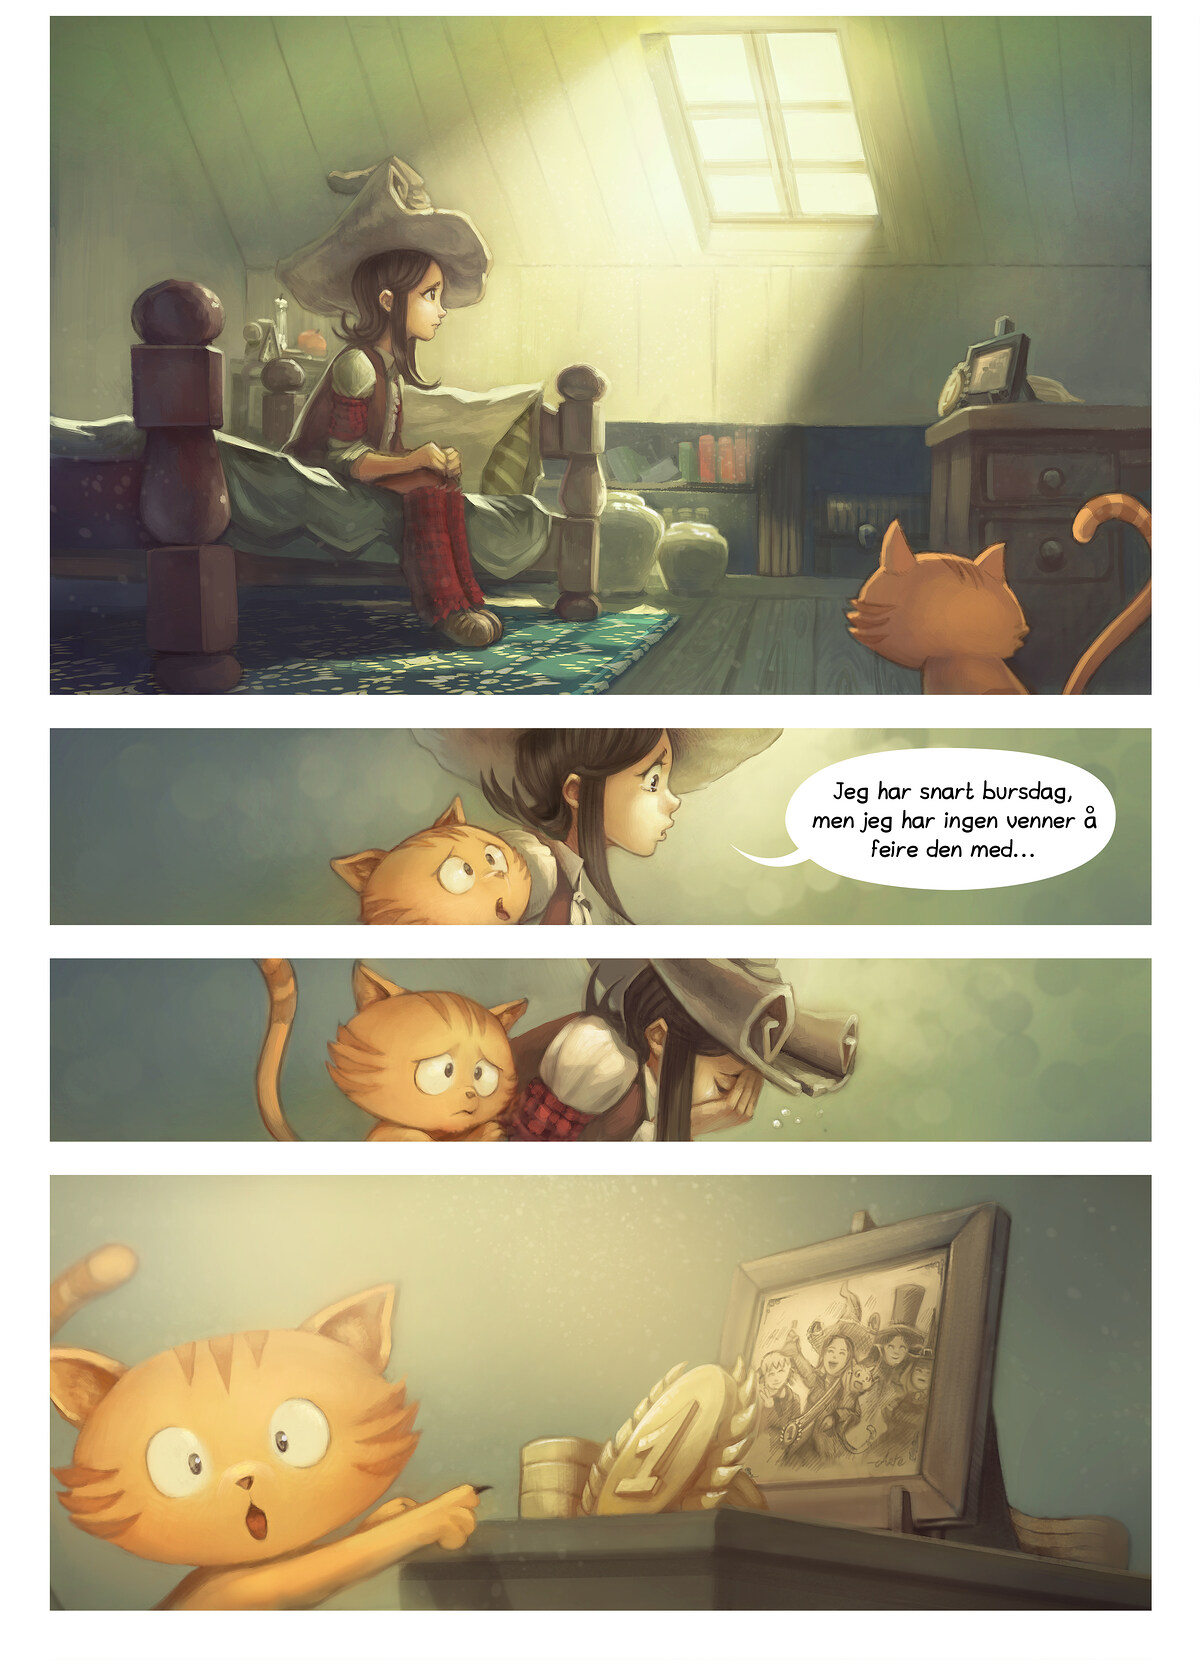 A webcomic page of Pepper&Carrot, episode 8 [no], side 1